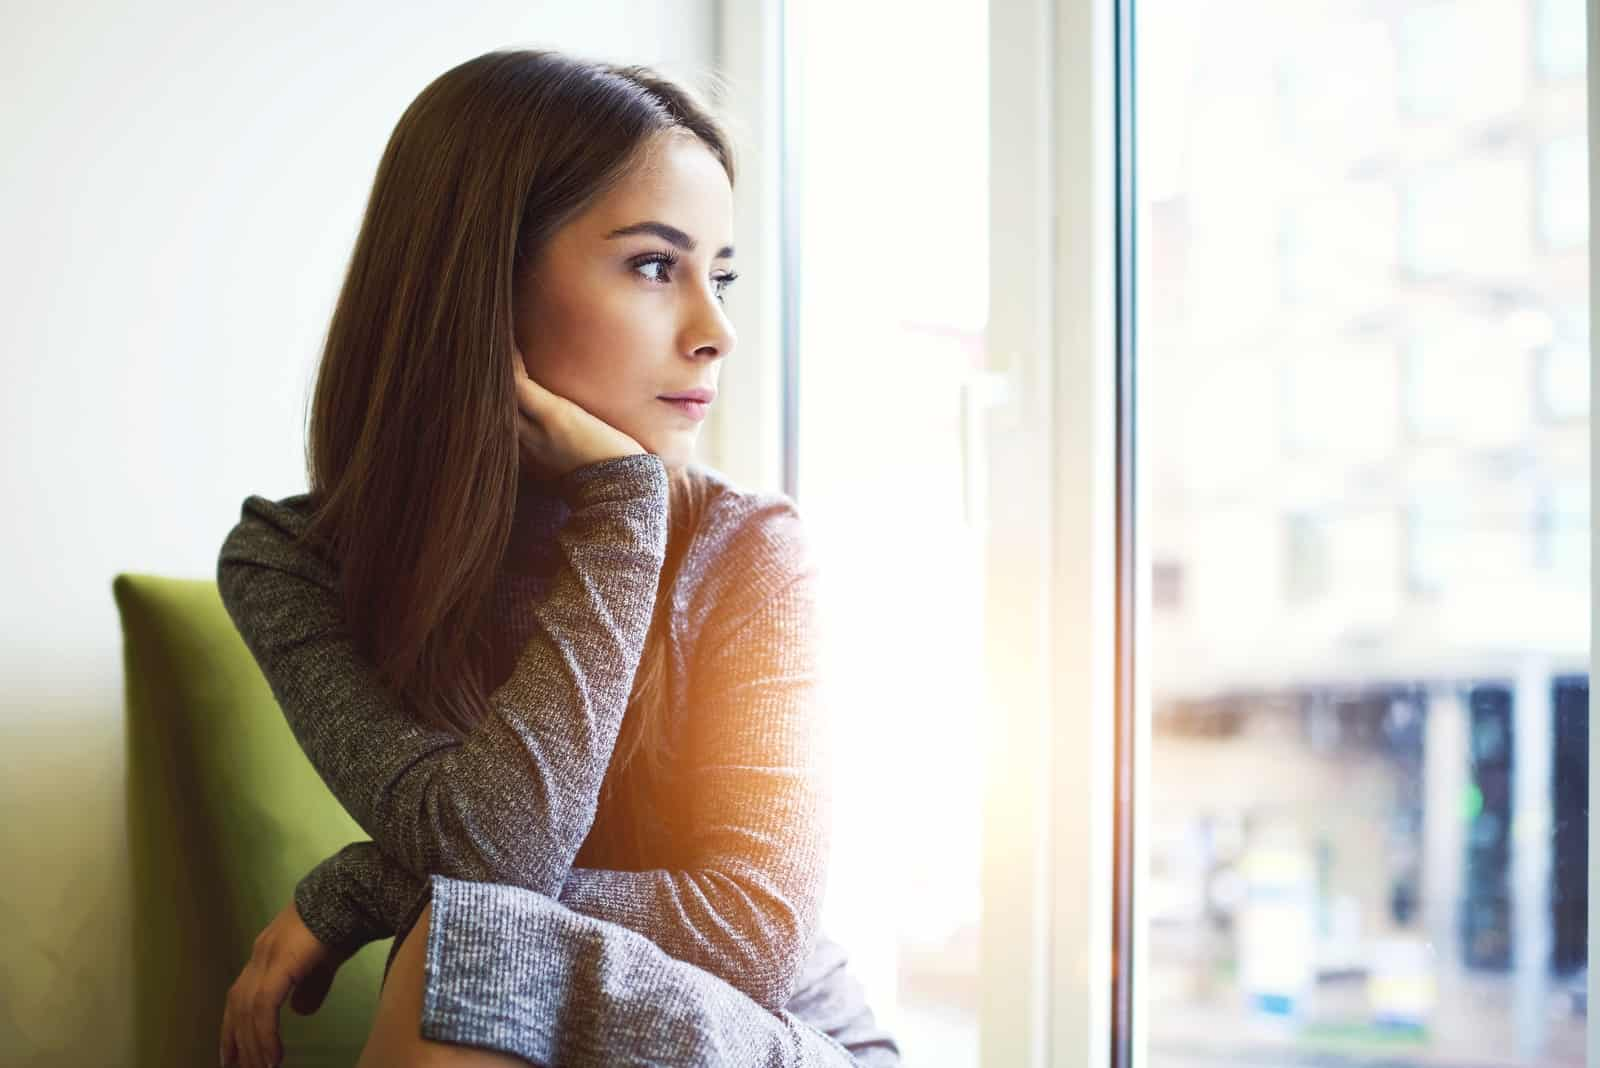 woman sitting on chair while looking through window